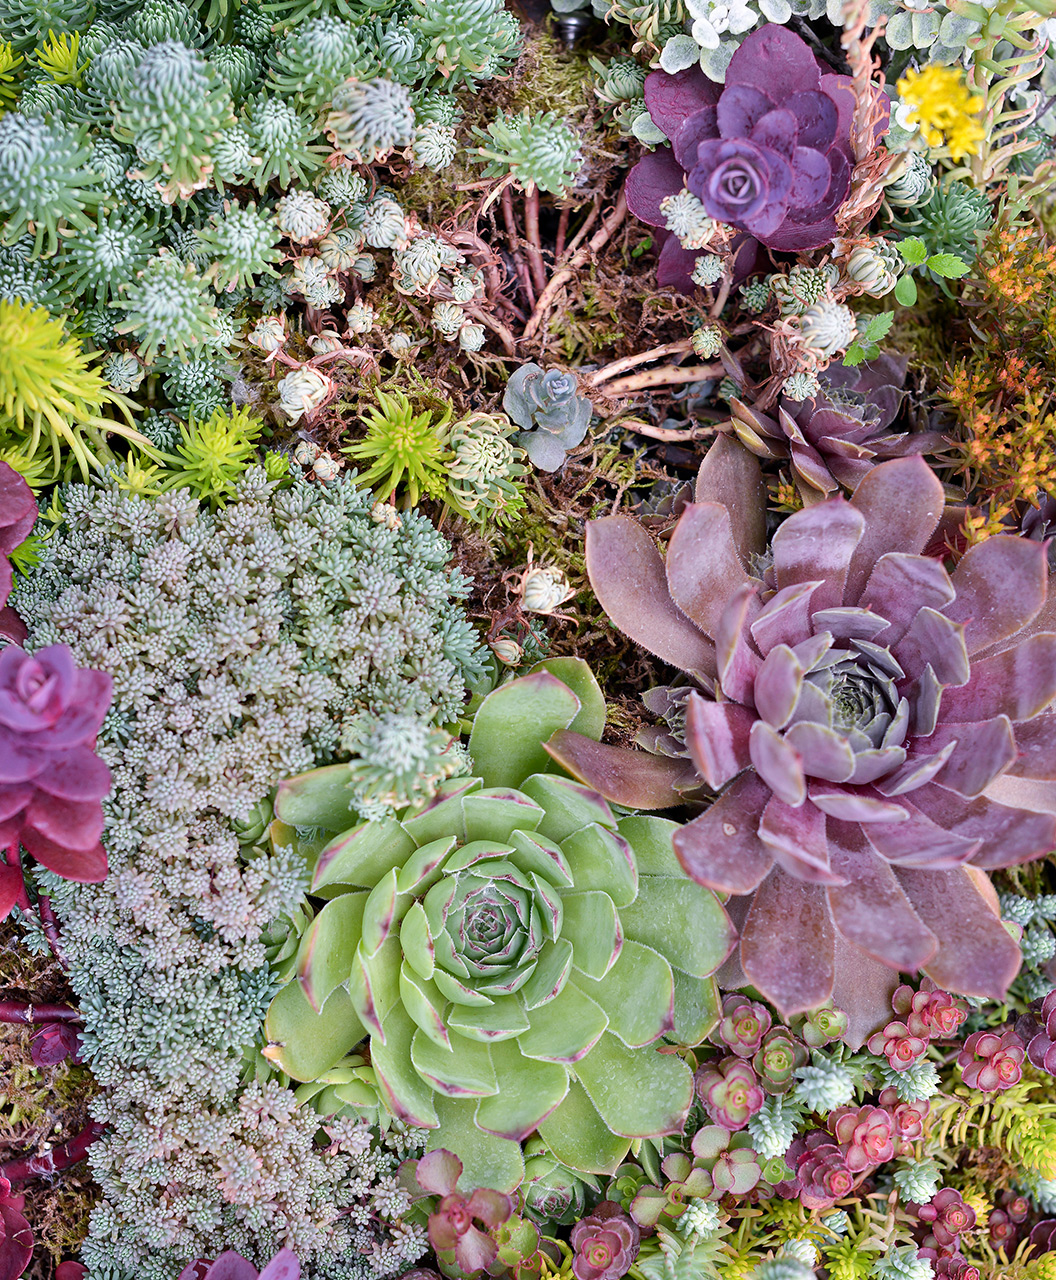 Succulents 'Hens & Chicks'